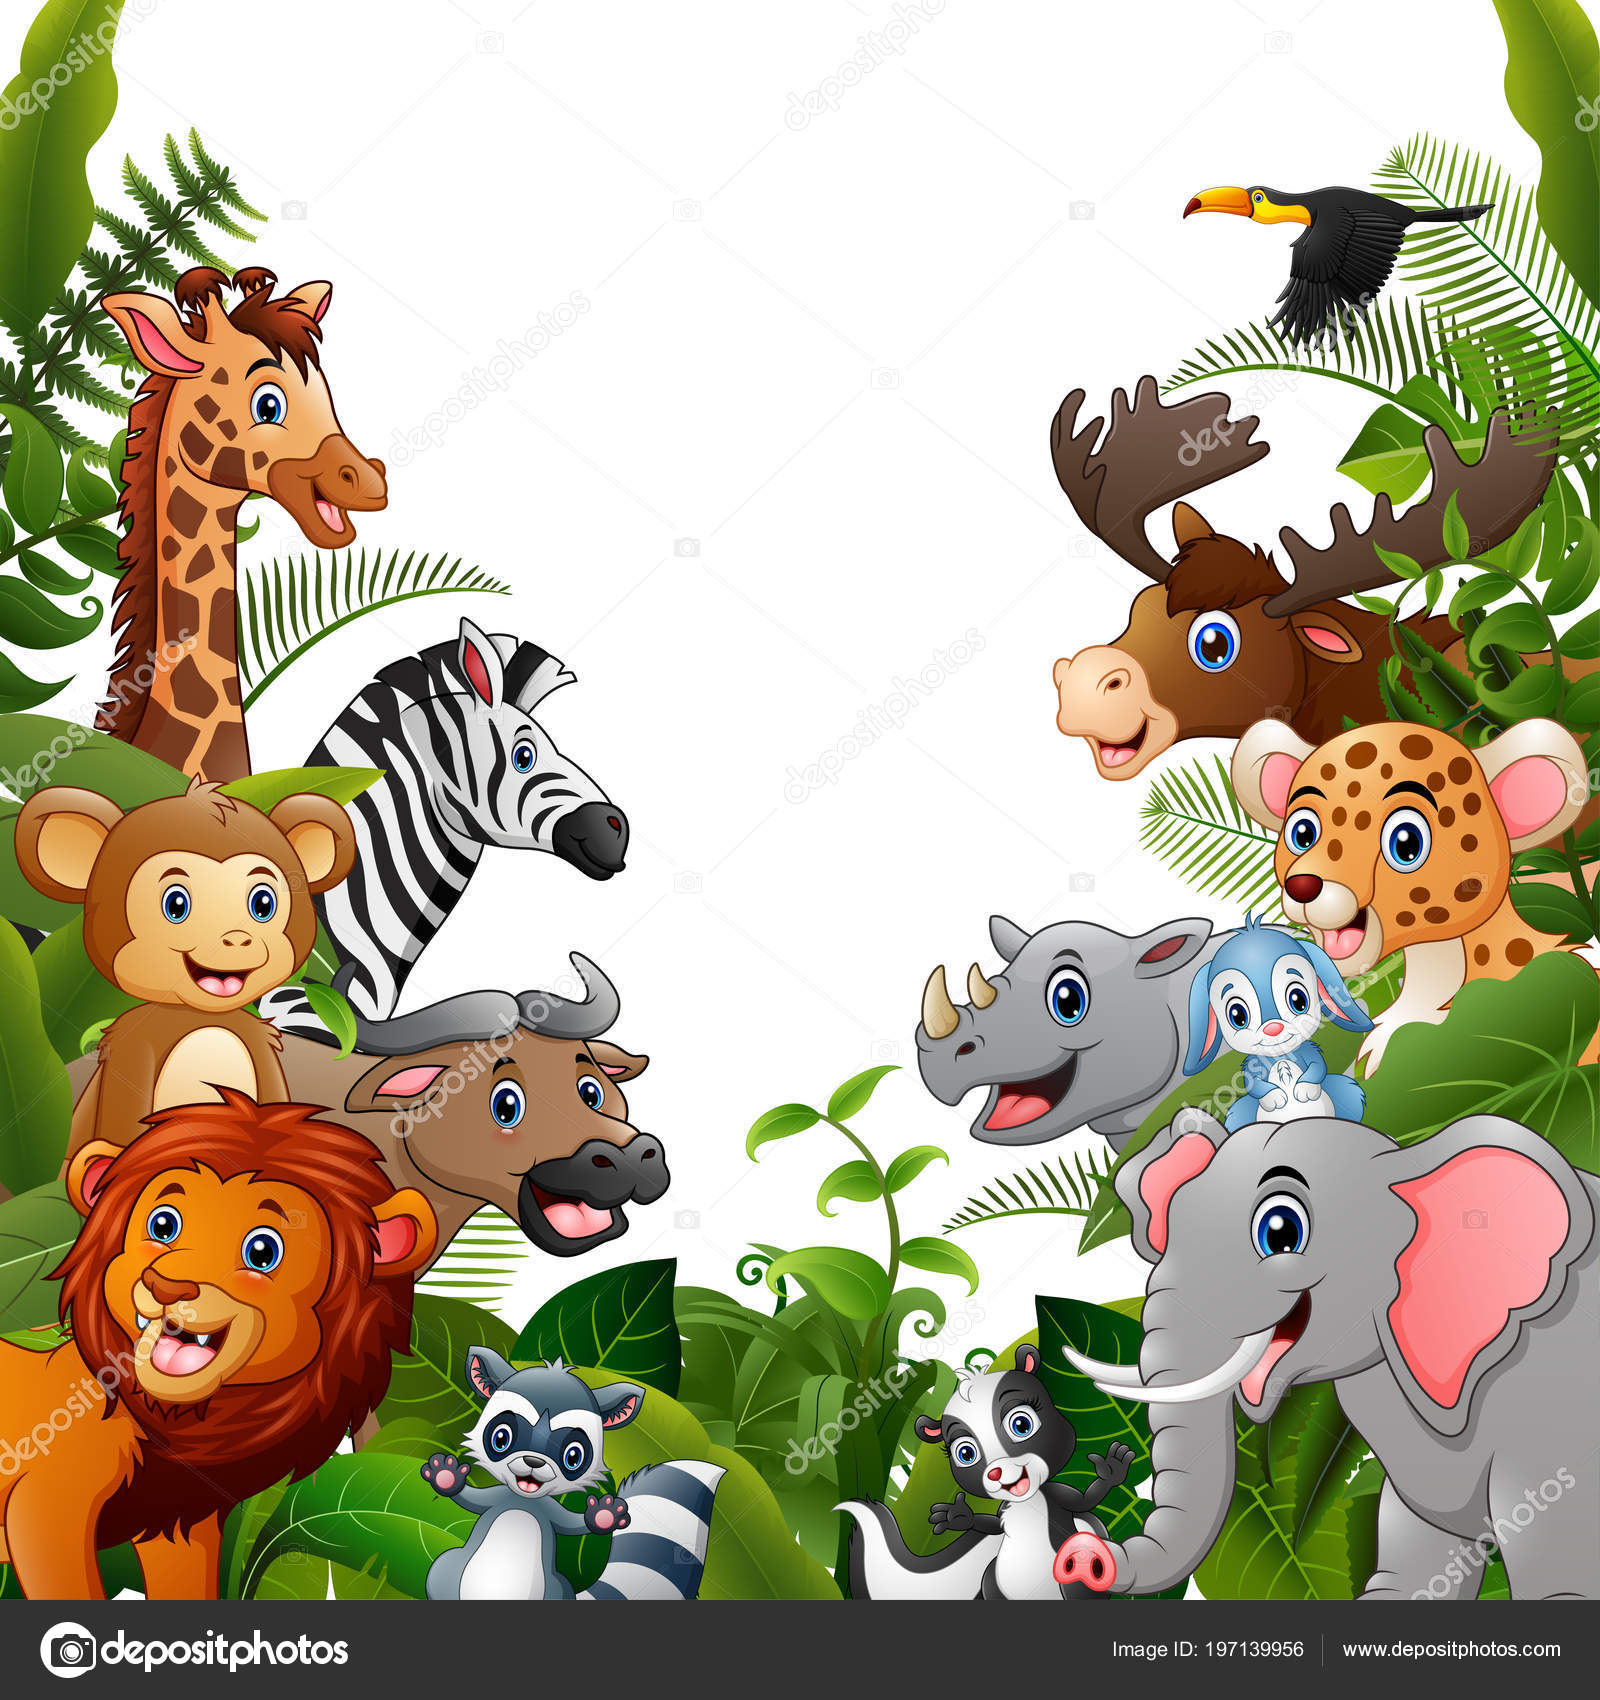 Illustration Animals Forest Cartoon Meet Together Stock Vector